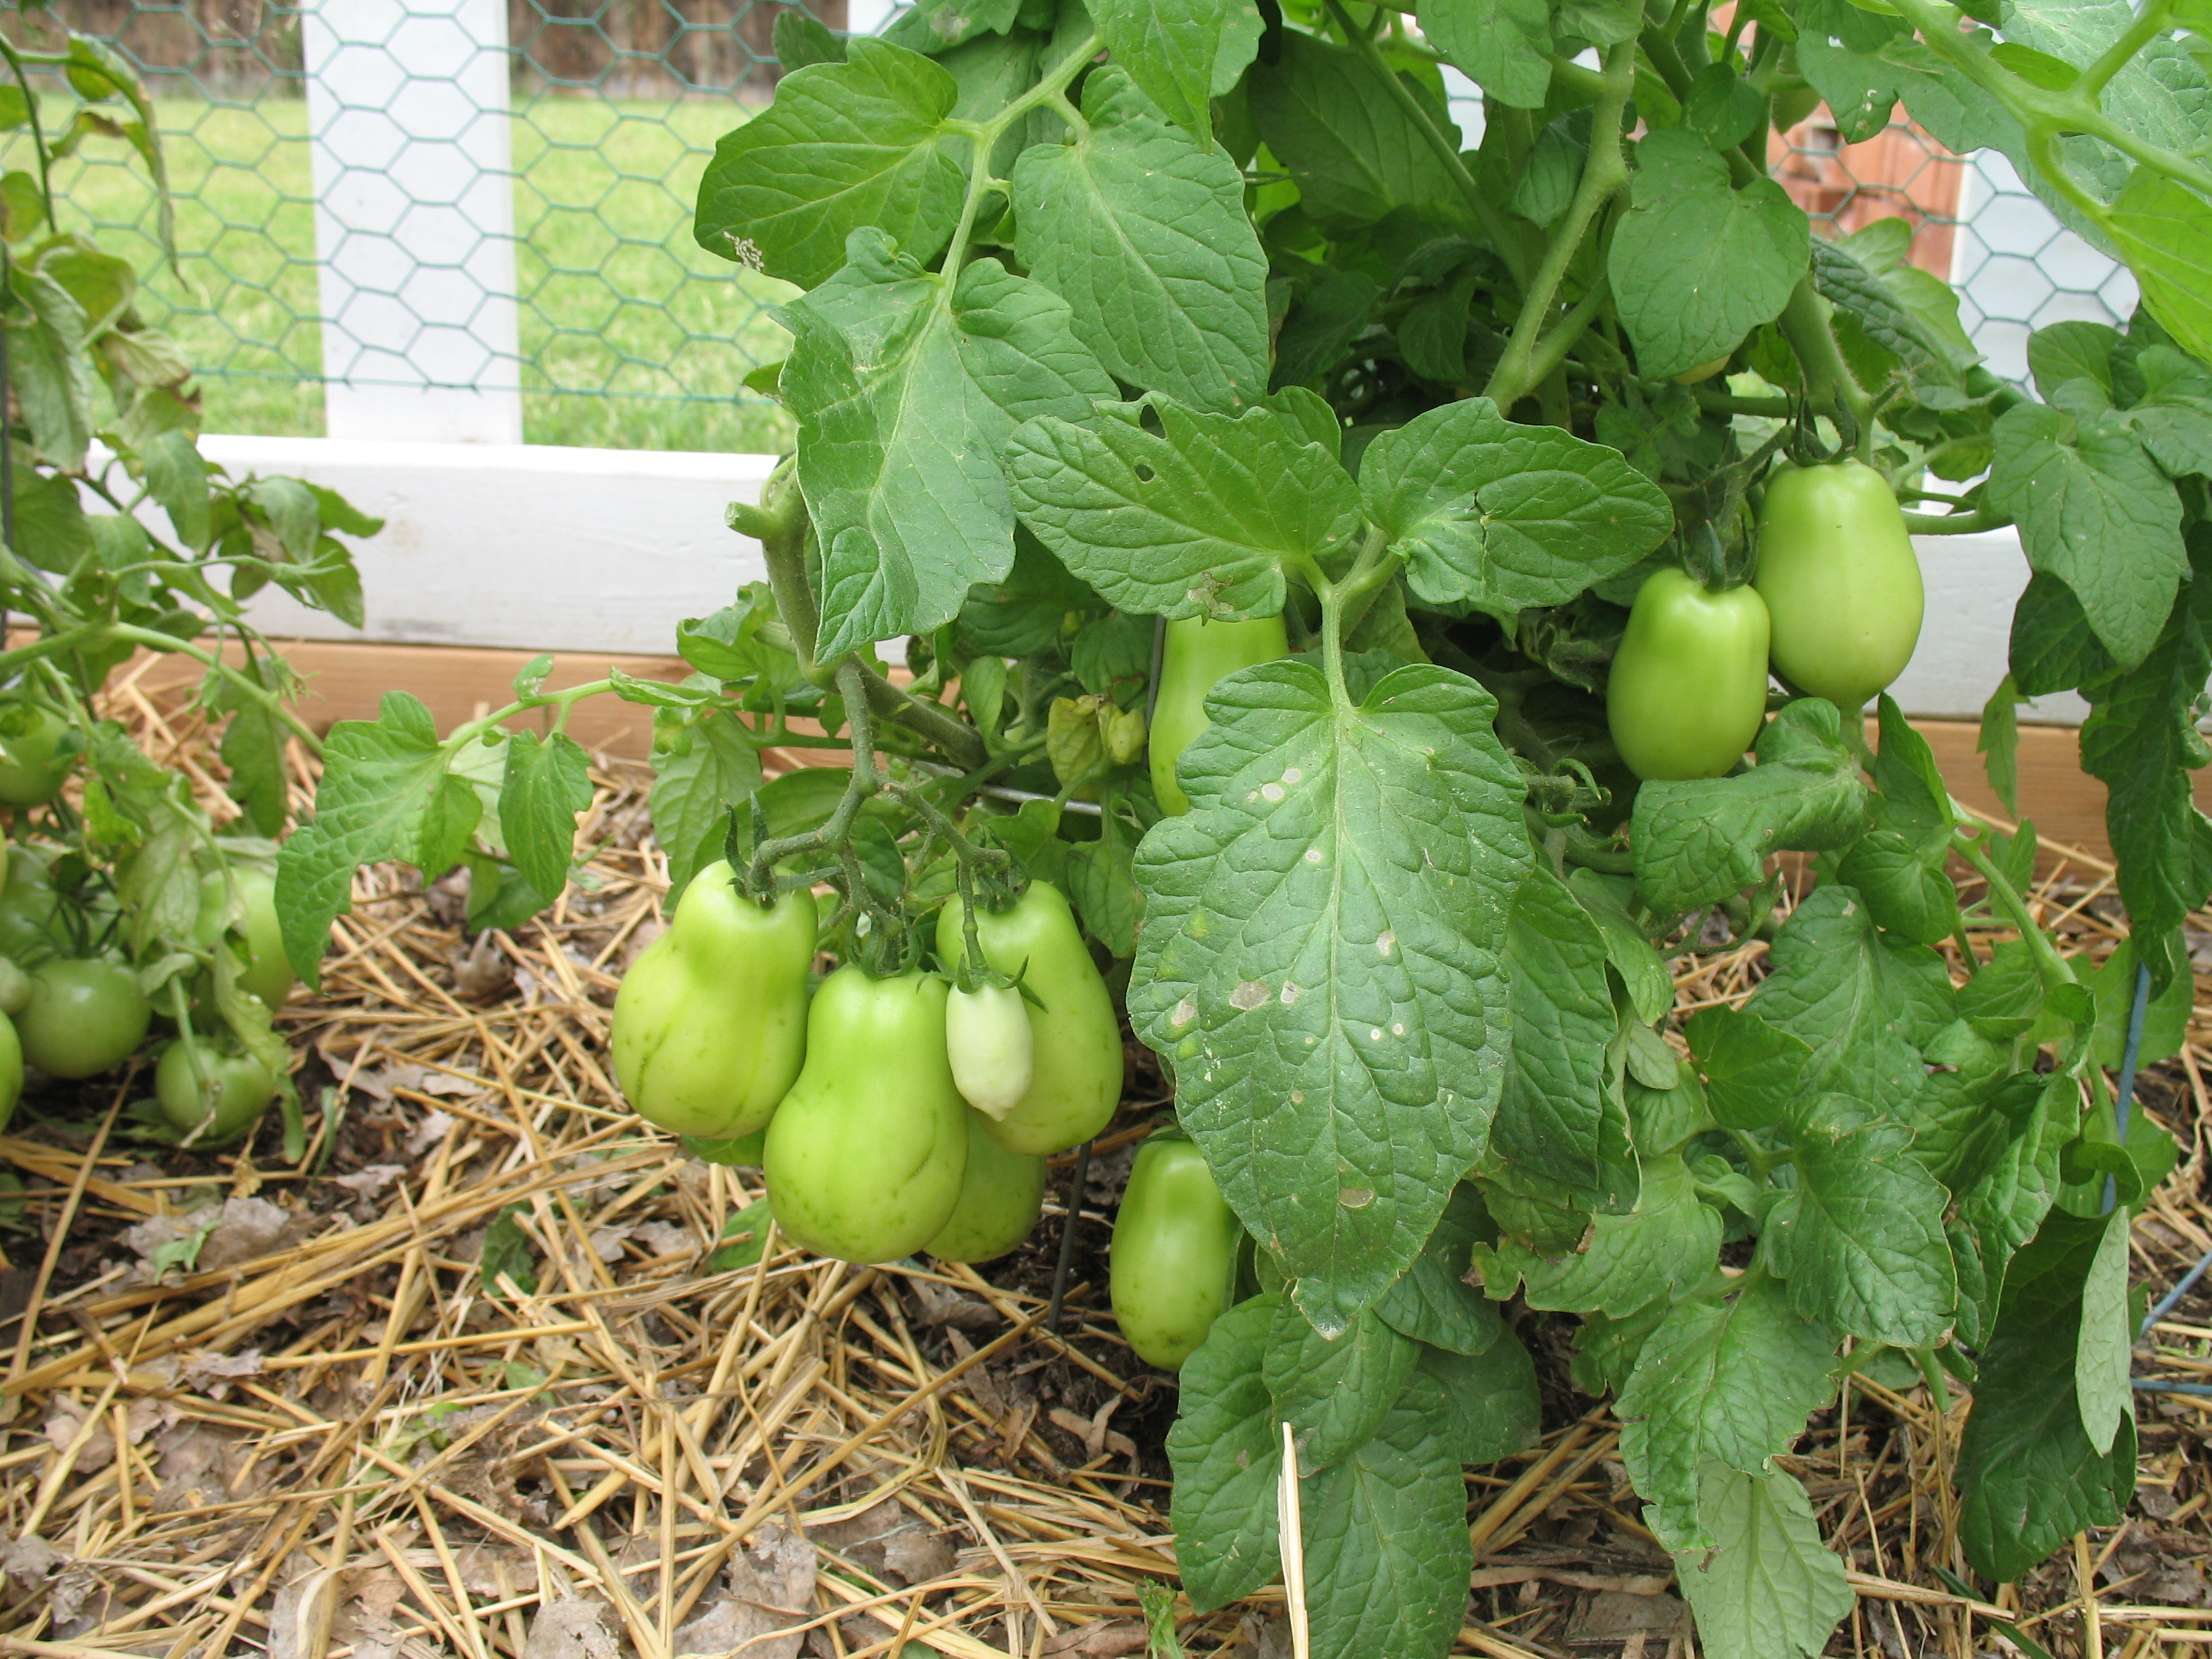 Captivating Arizonans Look To Save On Their Food Budget By Starting Backyard Gardens